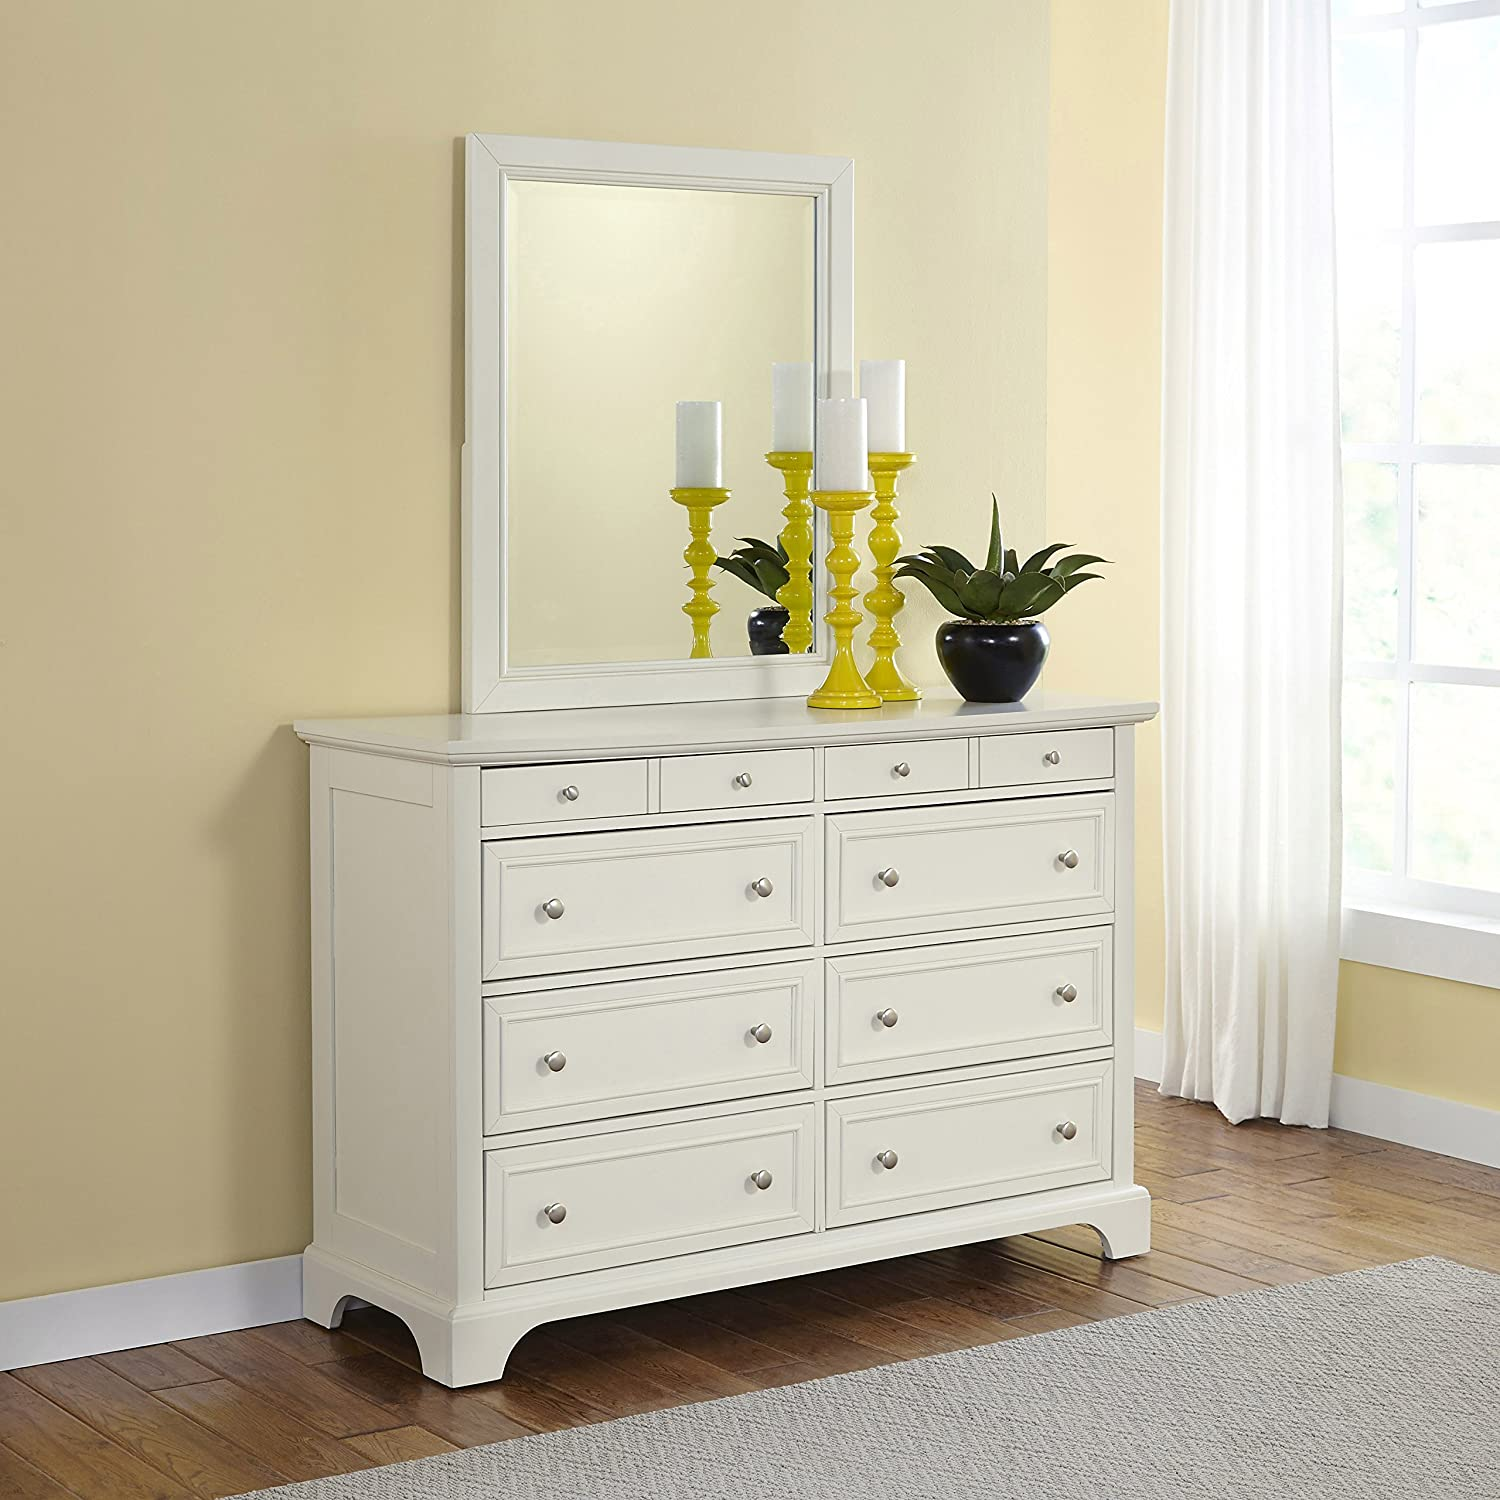 Naples White Dresser and Mirror by Home Styles